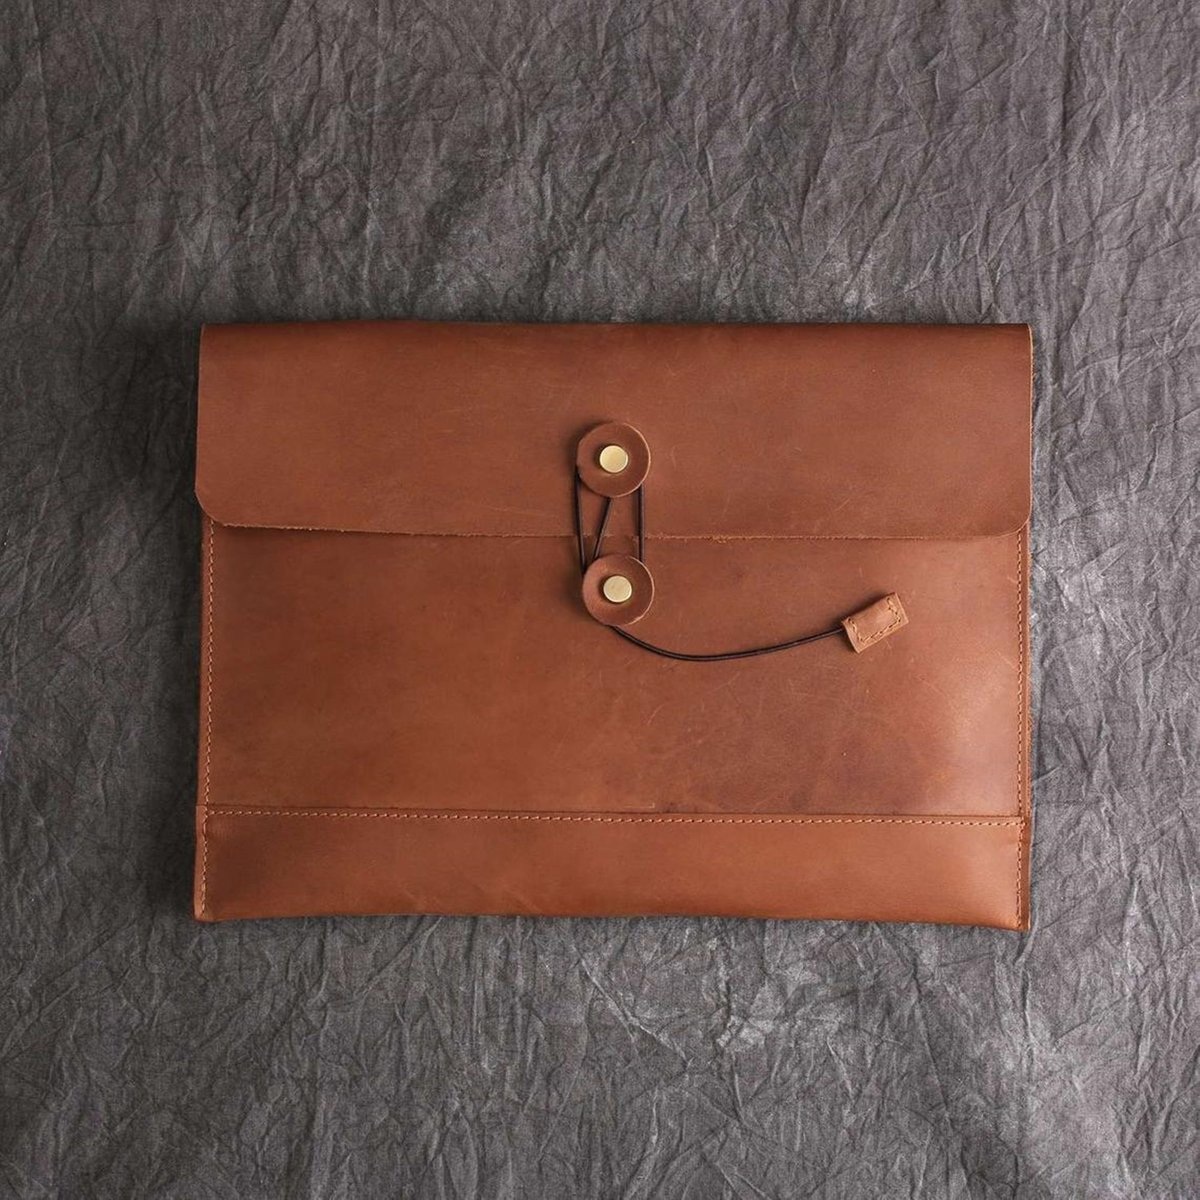 Excited to share the latest addition to my #etsy shop: Personalized Groomsmen Gift Mens Leather Envelope Clutch Pen Holder iPhone Case Card Holder Small Satchel Bag Travel Wallet Made in India  #brown #graduation #thanksgiving #crossbody #bohohip